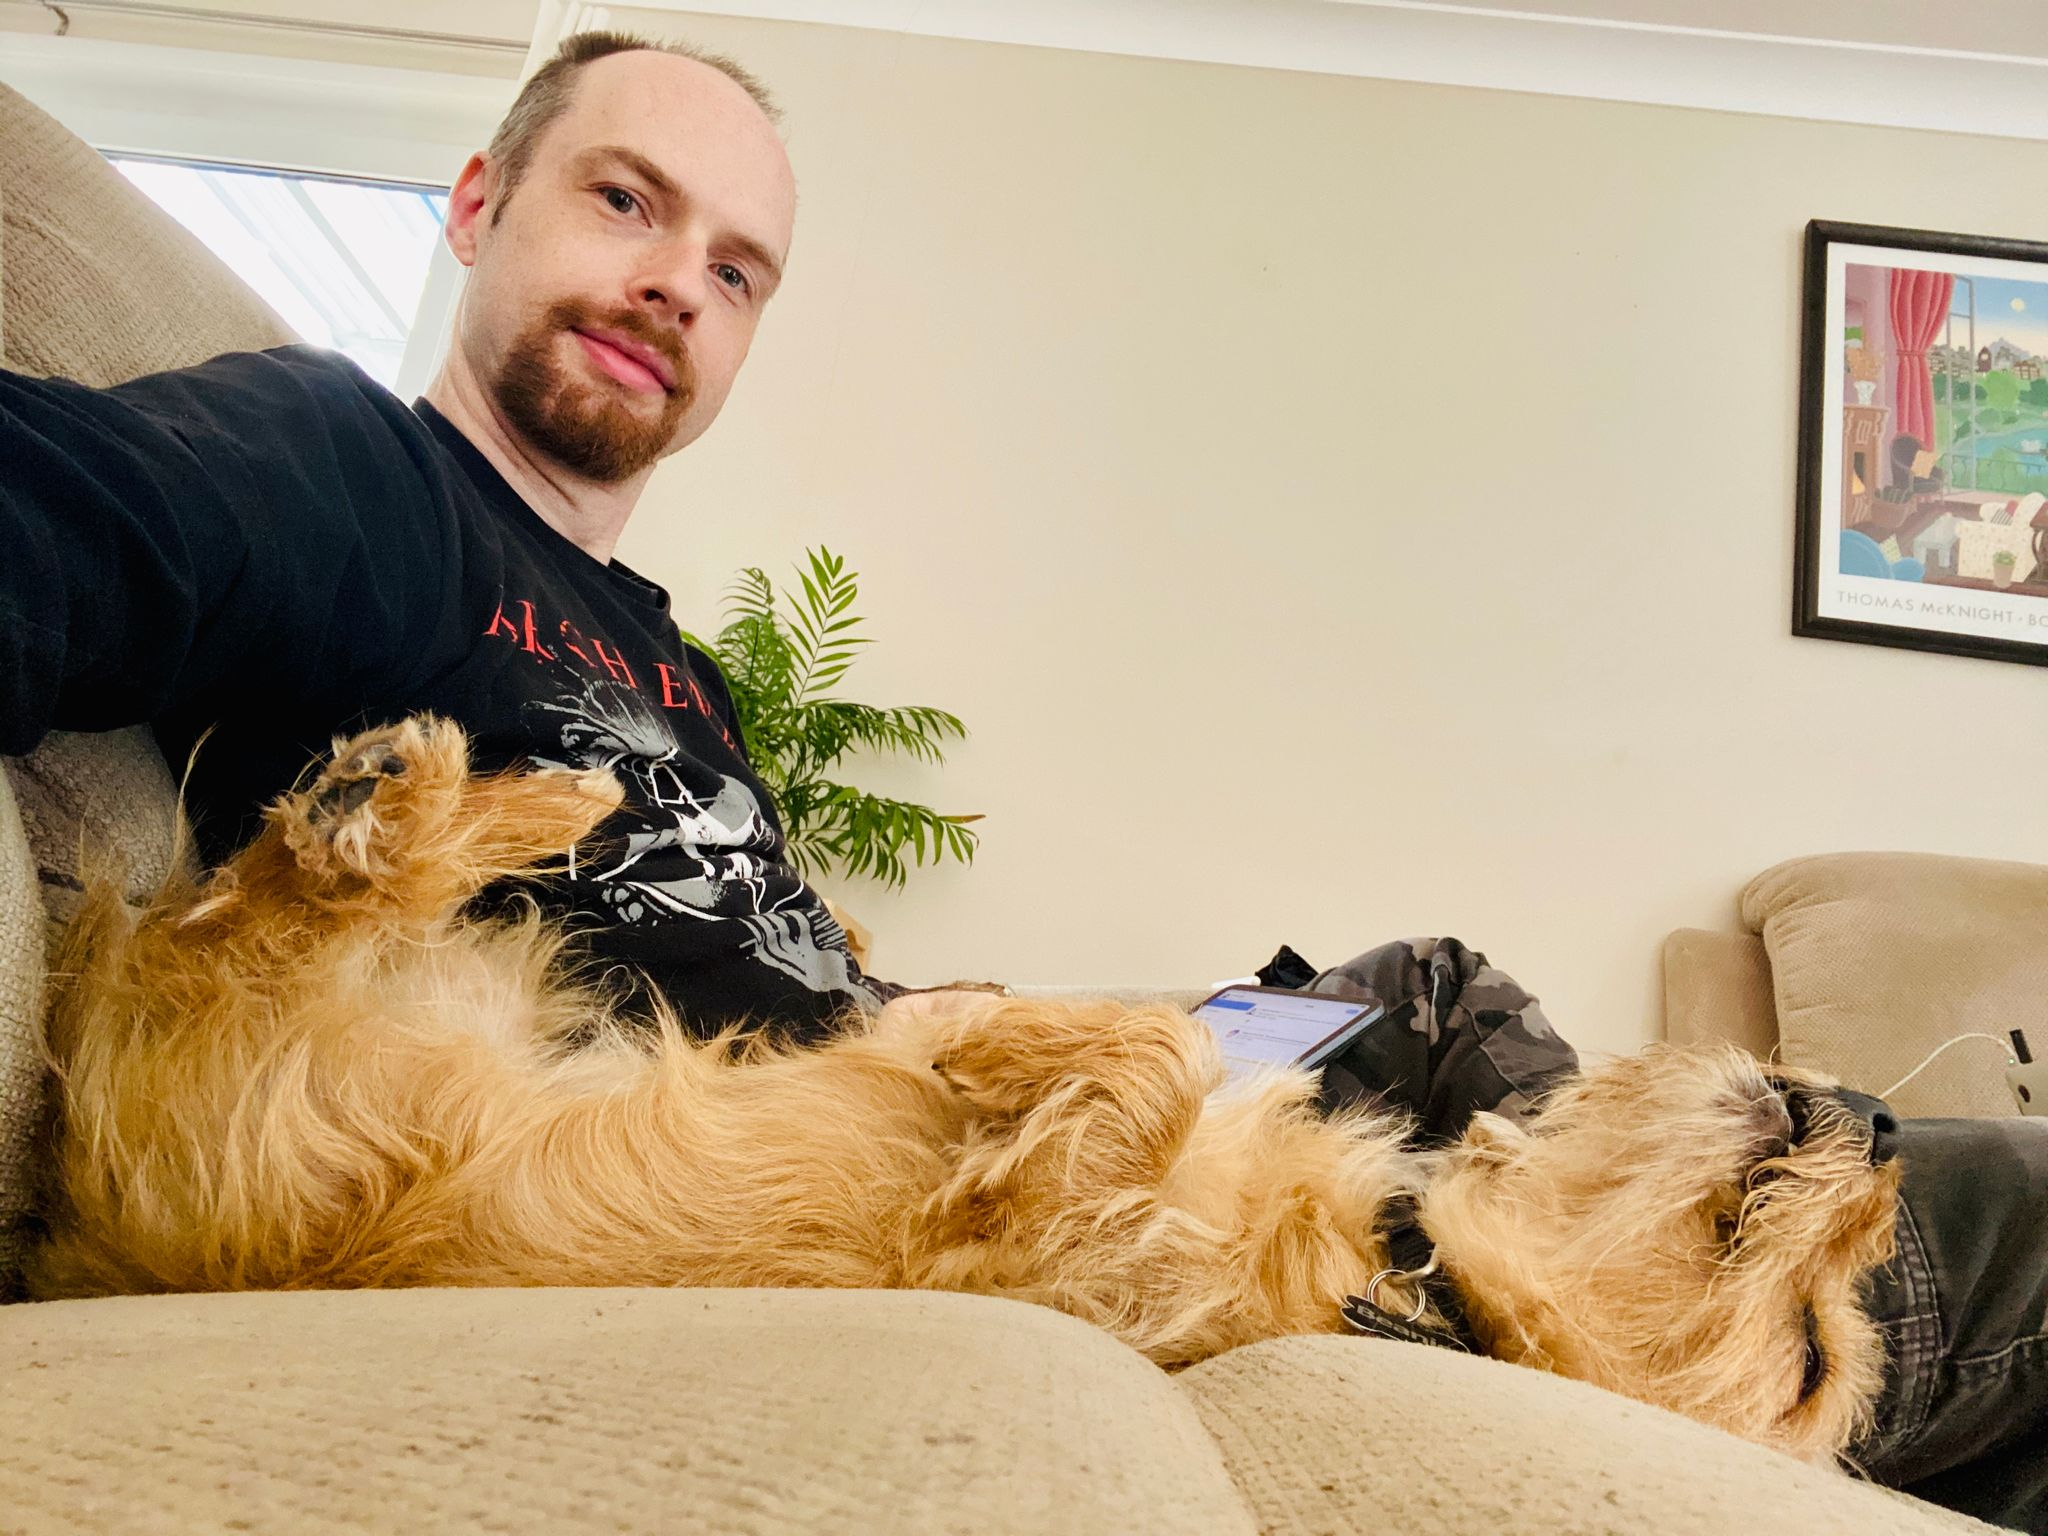 A photo taken from the side showing me, a white male with brown hair and a red goatee, and the blonde scruffy dog clearly with his back legs in the air as he's lying upside-down.